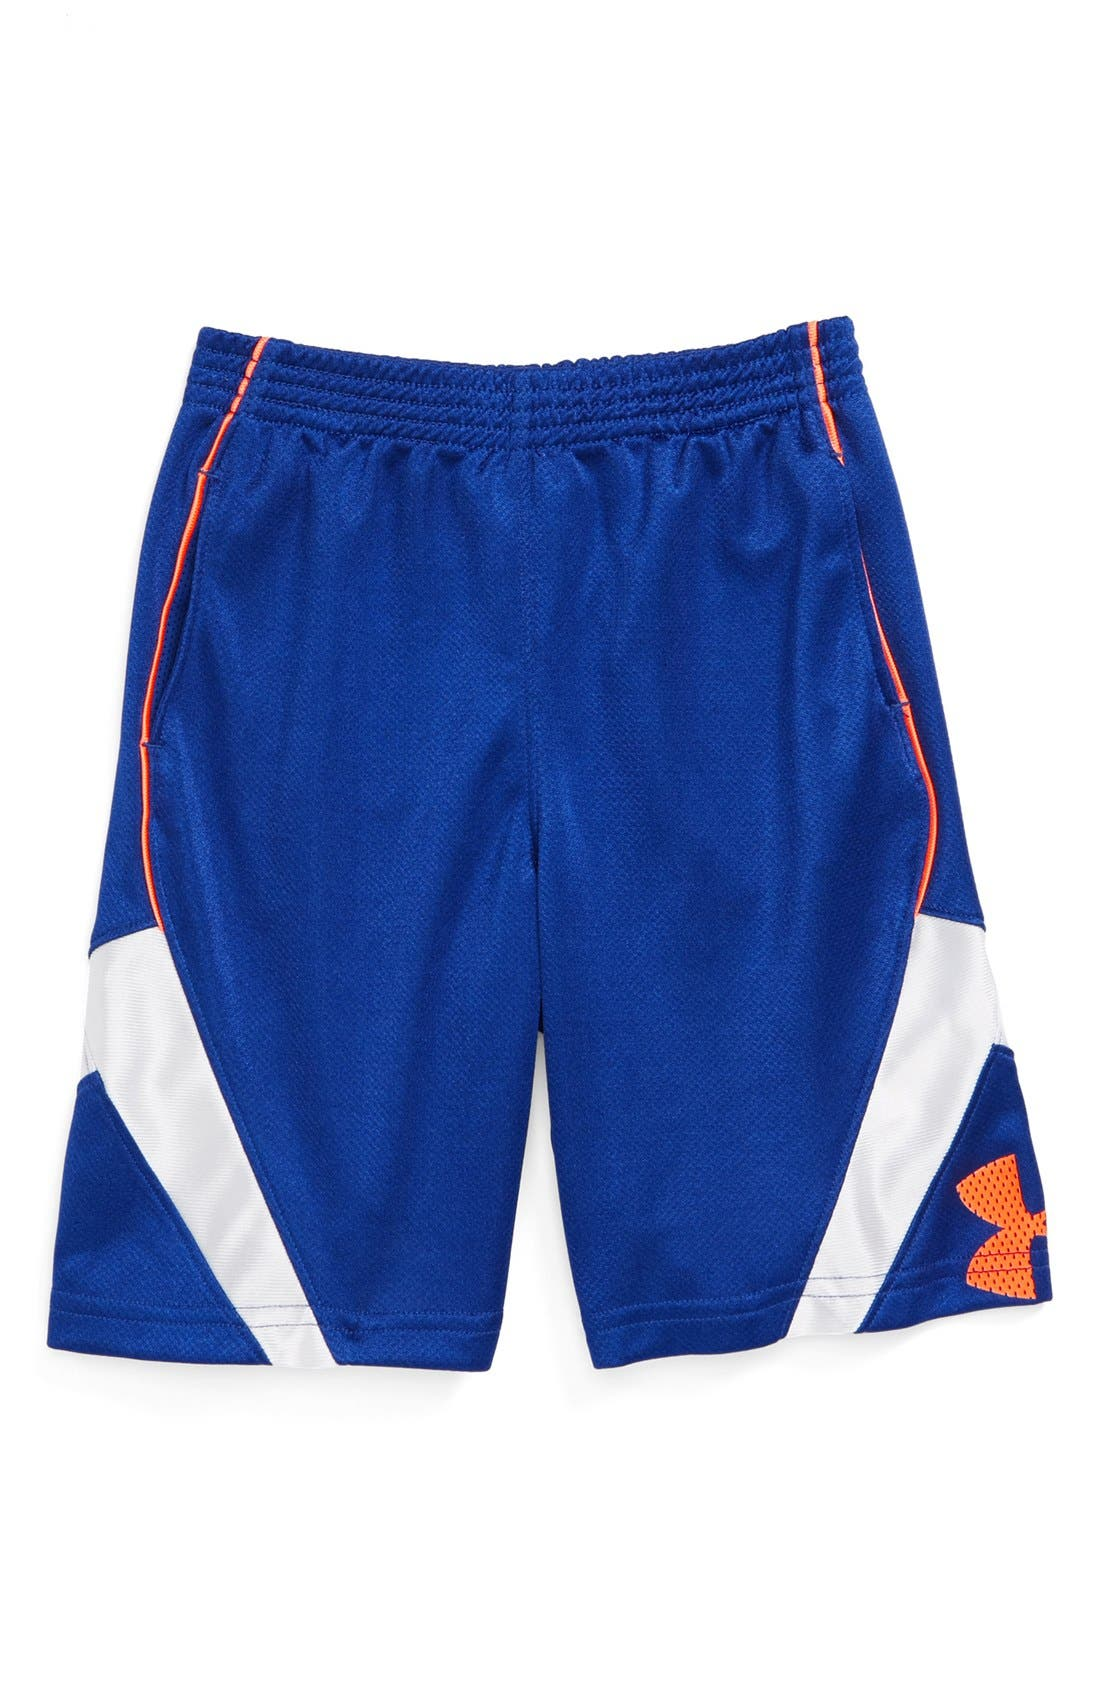 Main Image - Under Armour 'Jhawk' Shorts (Toddler Boys)